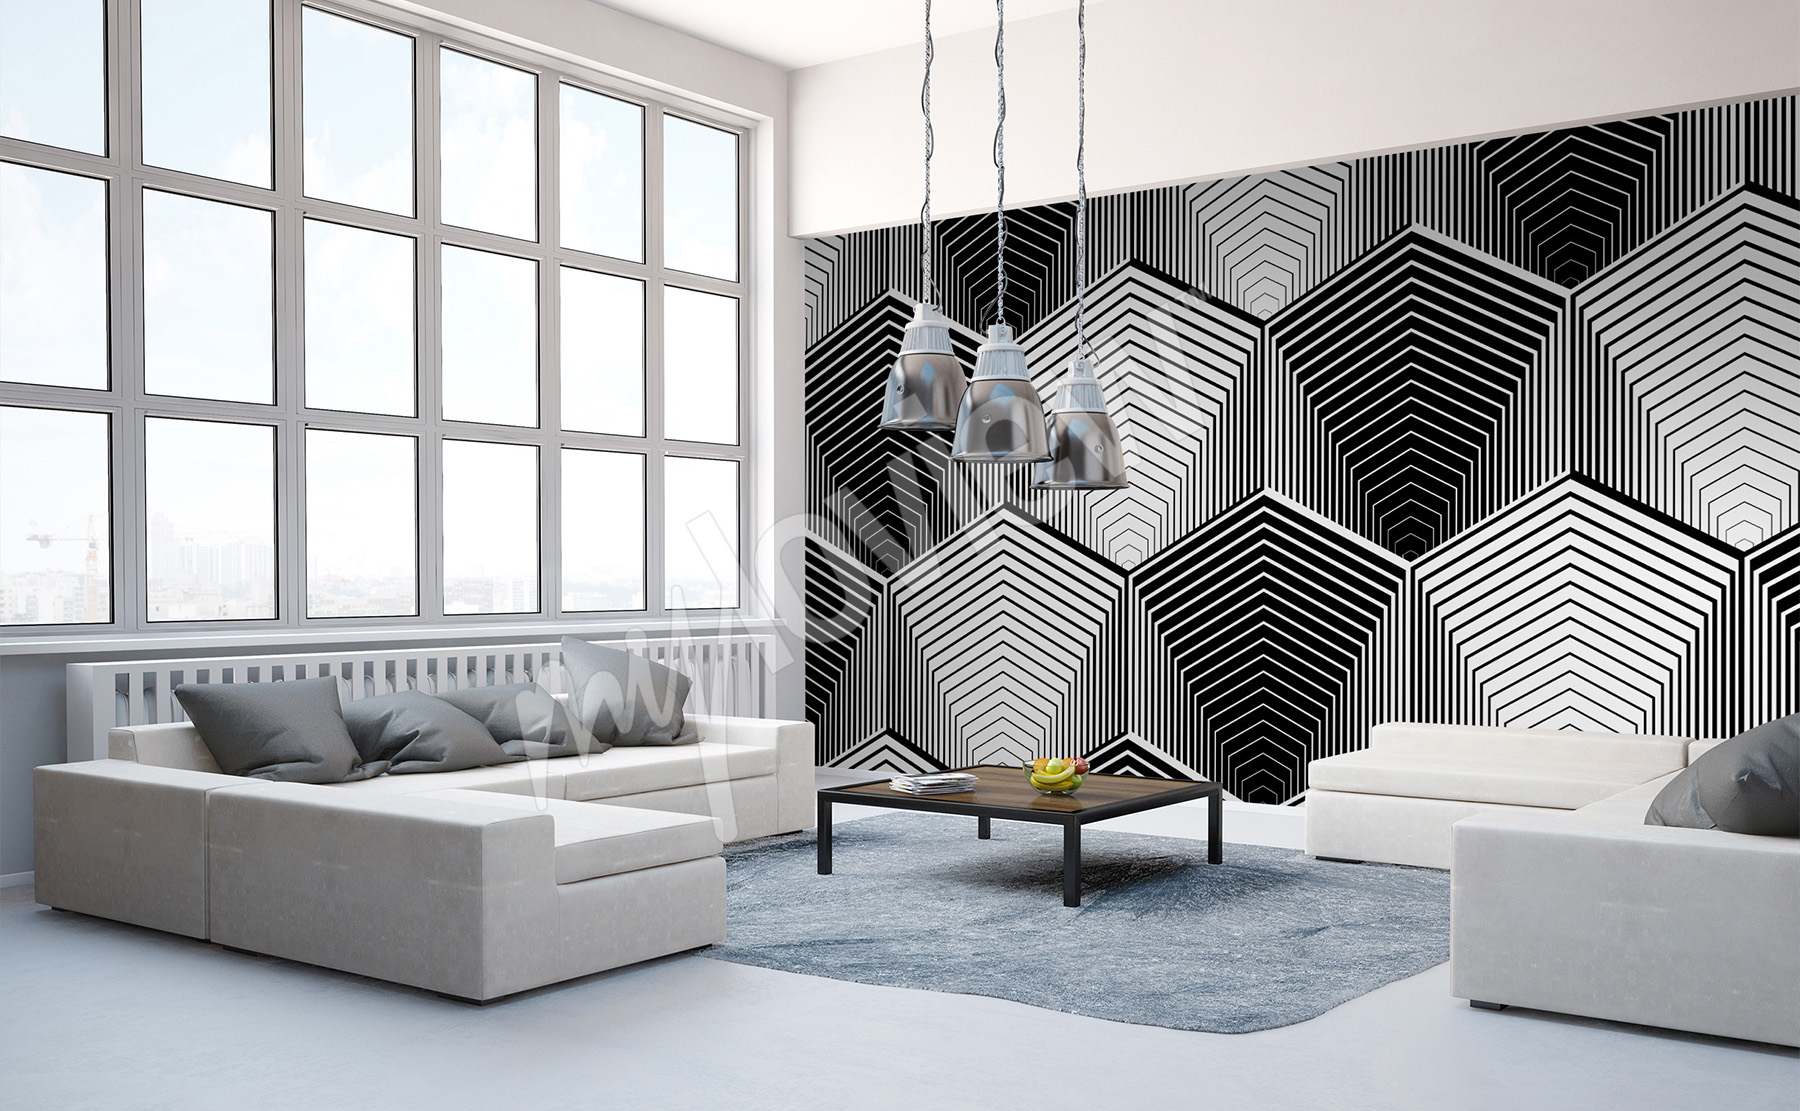 murals black and white to size of wall. Black Bedroom Furniture Sets. Home Design Ideas